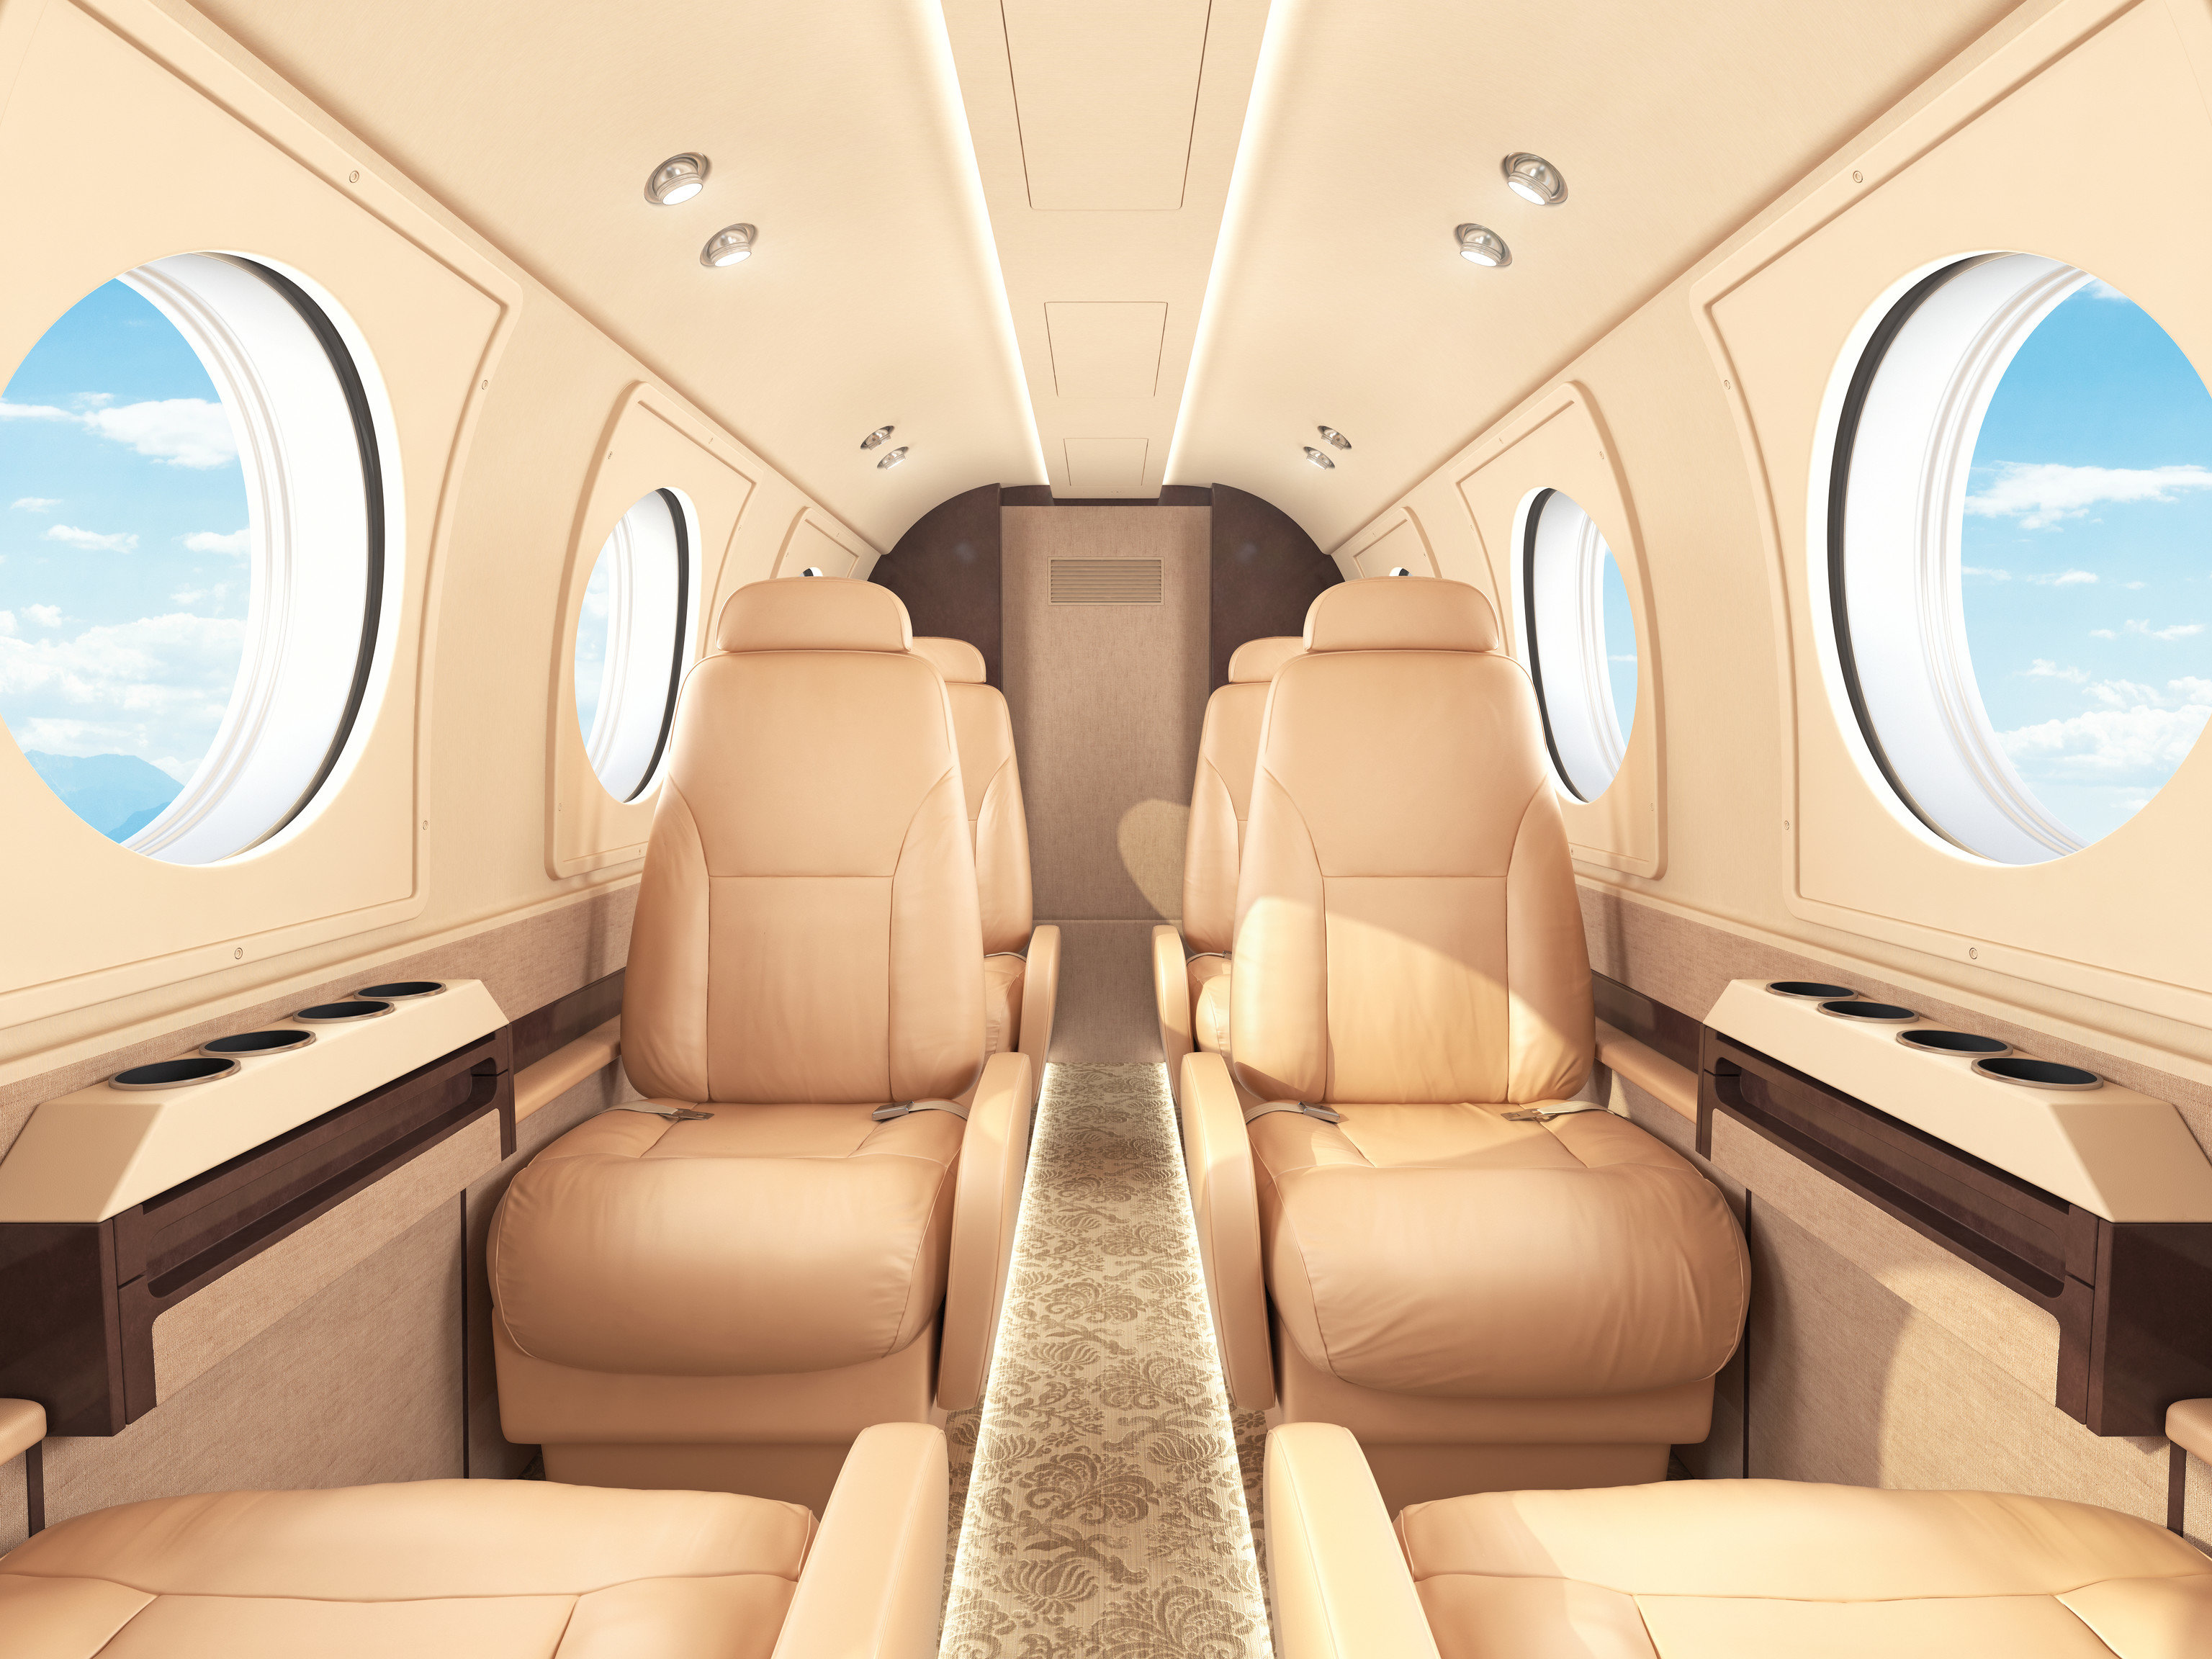 Flights Travel Tips sofa indoor Cabin airline air travel vehicle aircraft cabin scene business jet aviation furniture